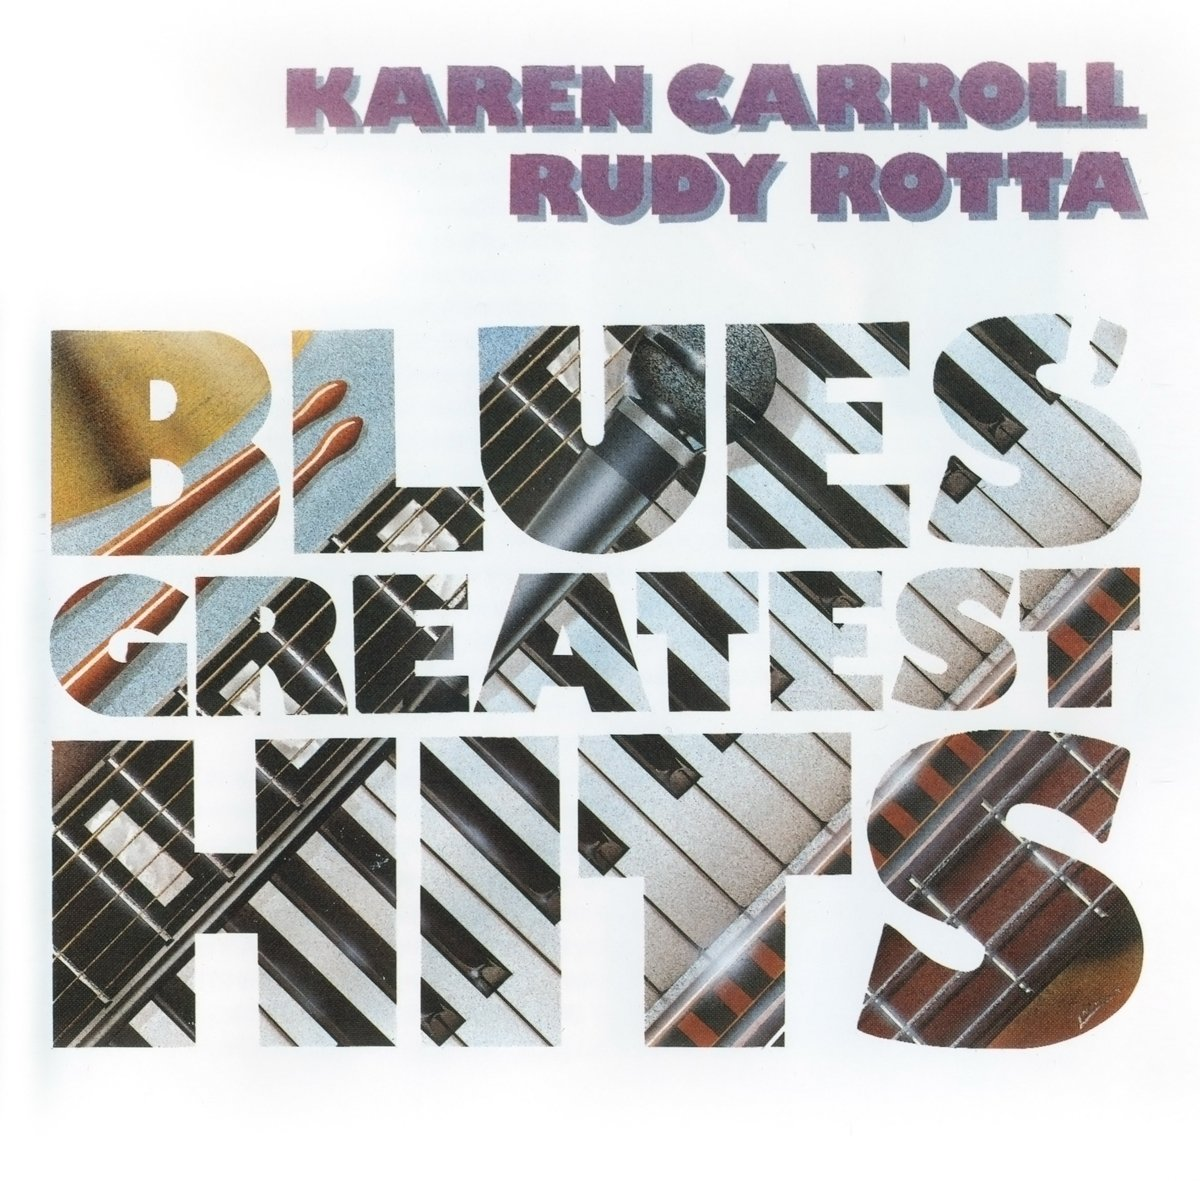 Karen Carroll,Rotta Rudy Carroll & Rotta. Blues Greatest Hits